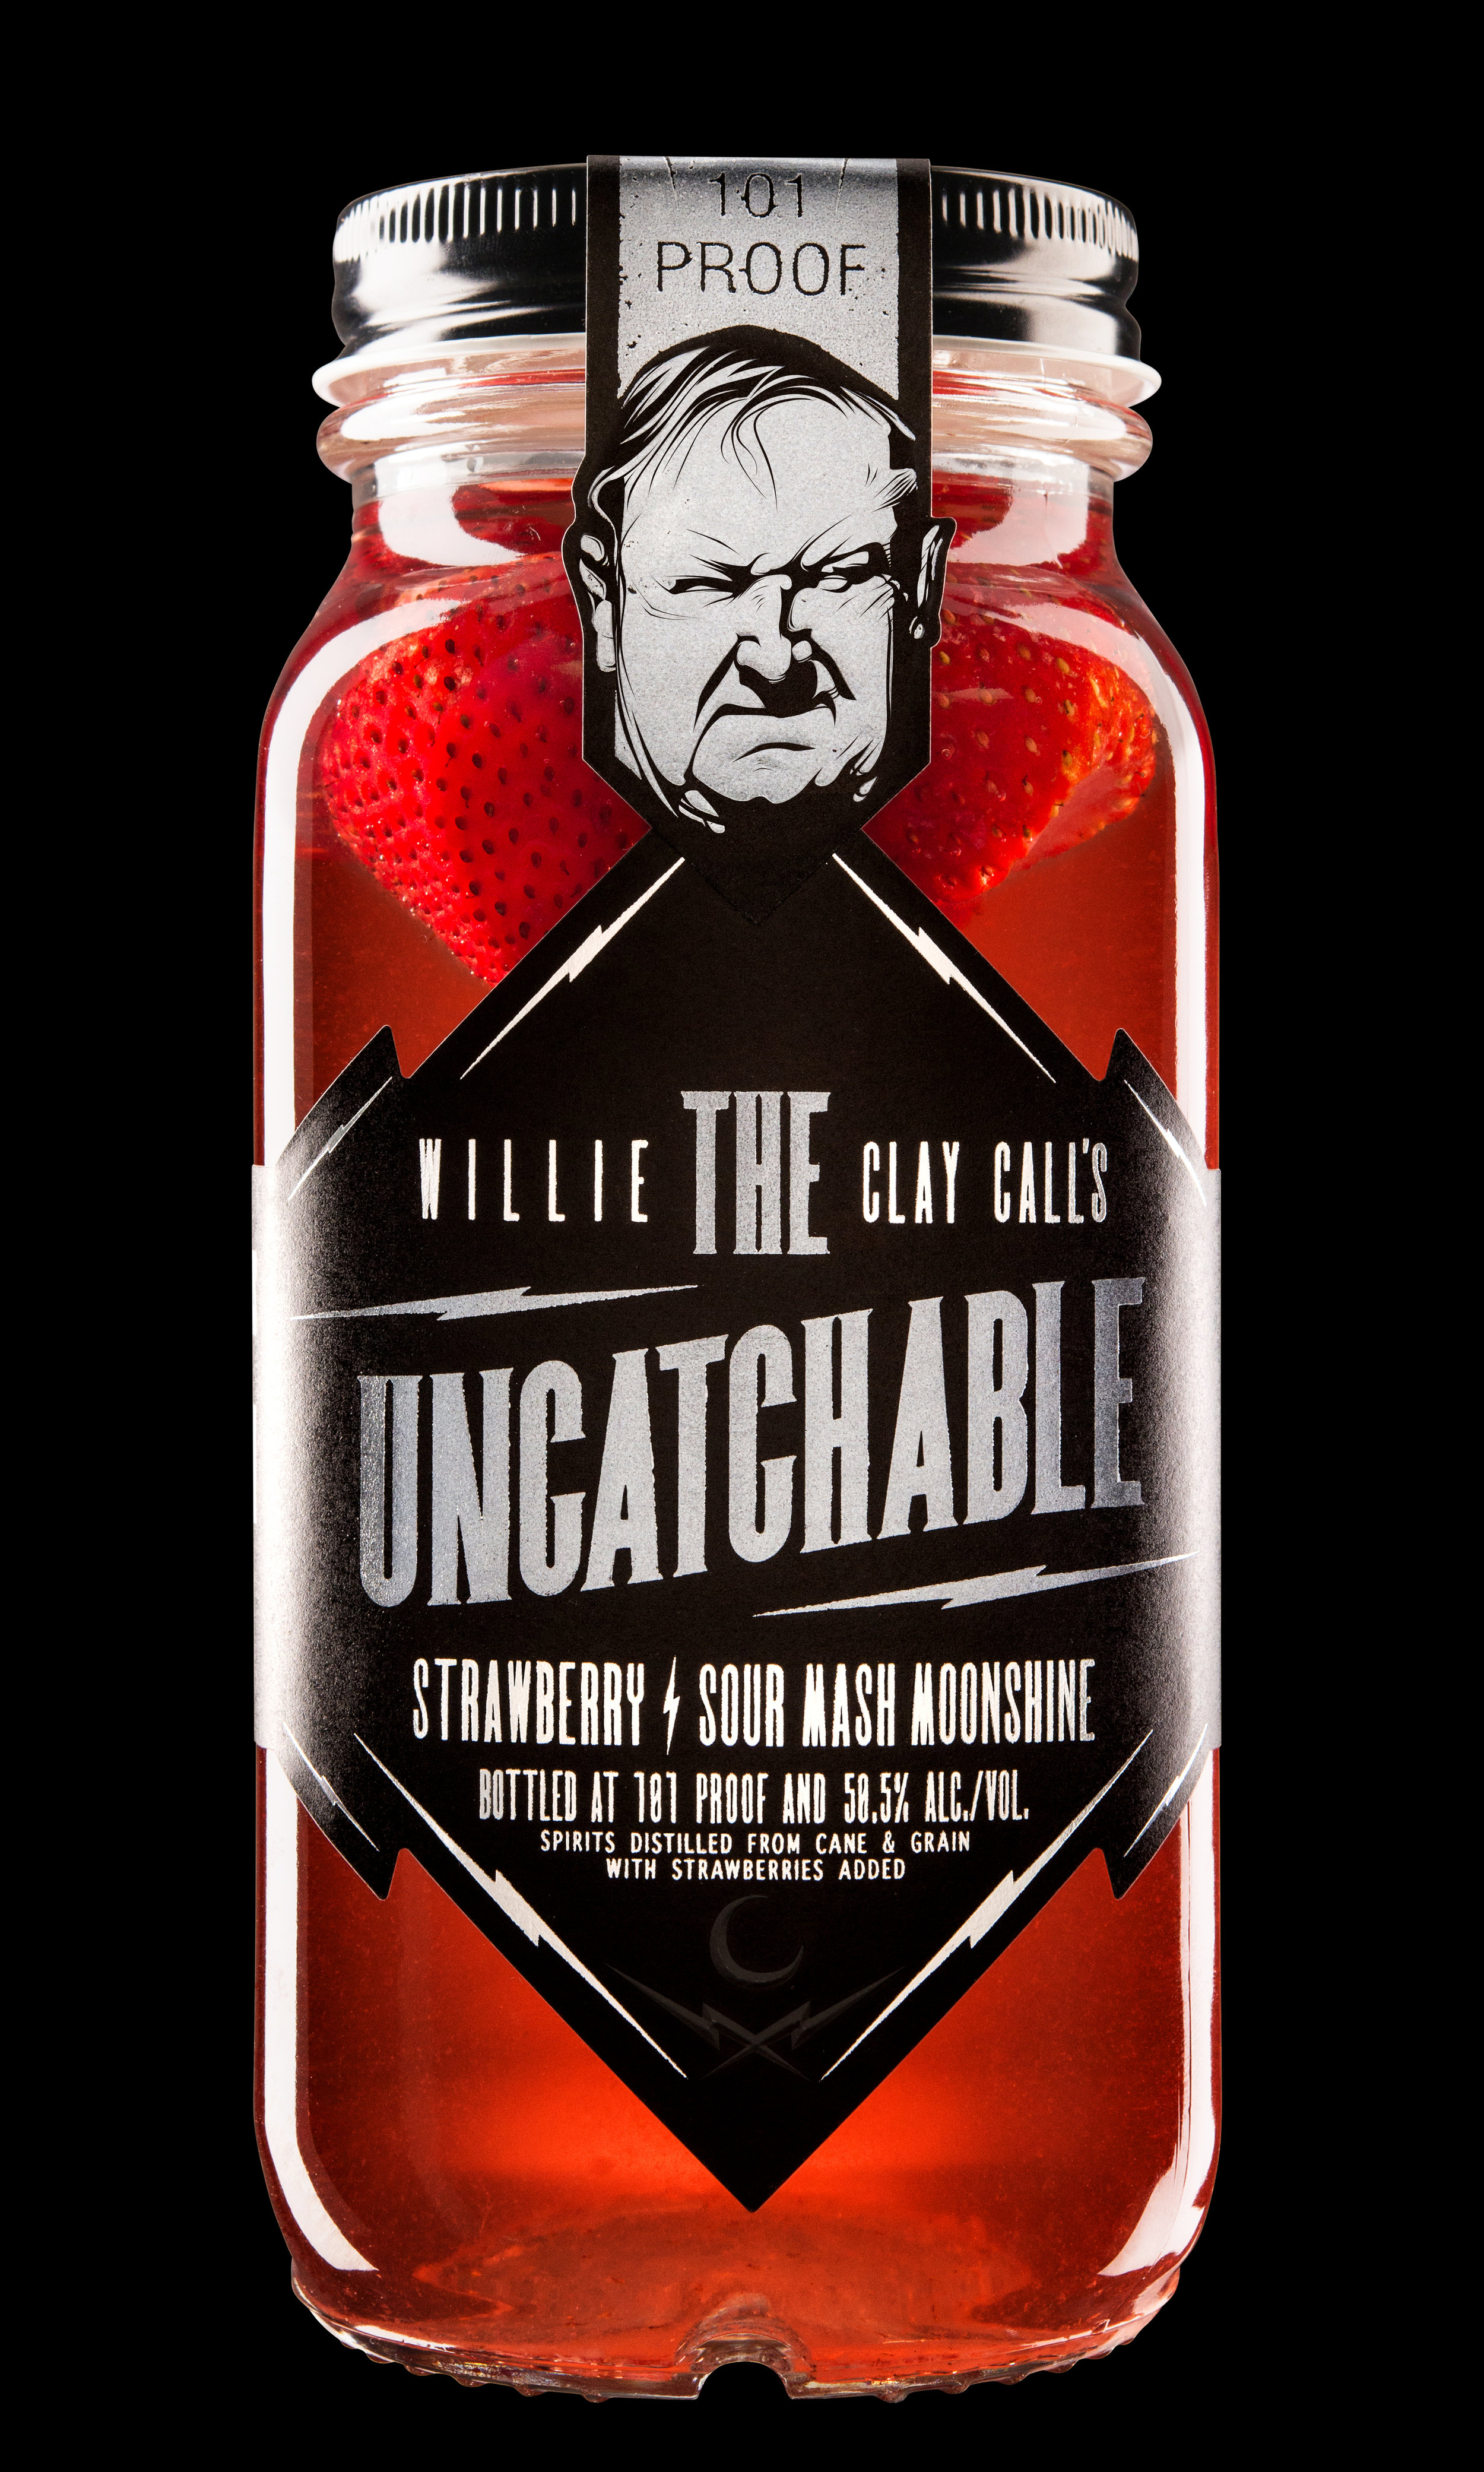 101 Proof with 100% real strawberries added. No artificial colors or flavors in this 'shine.